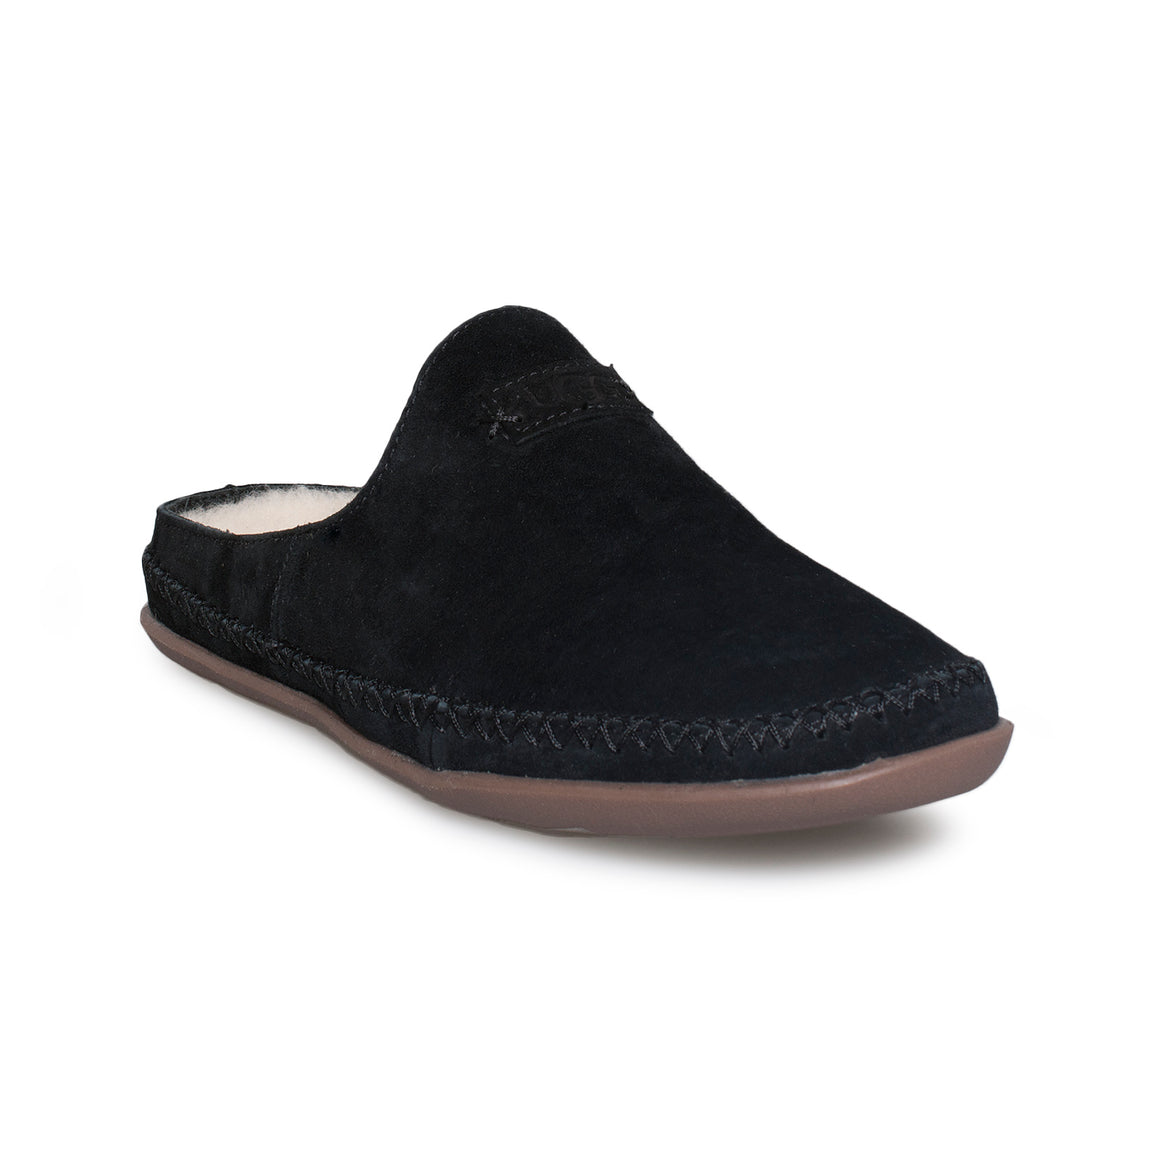 UGG Tamara Black Slippers